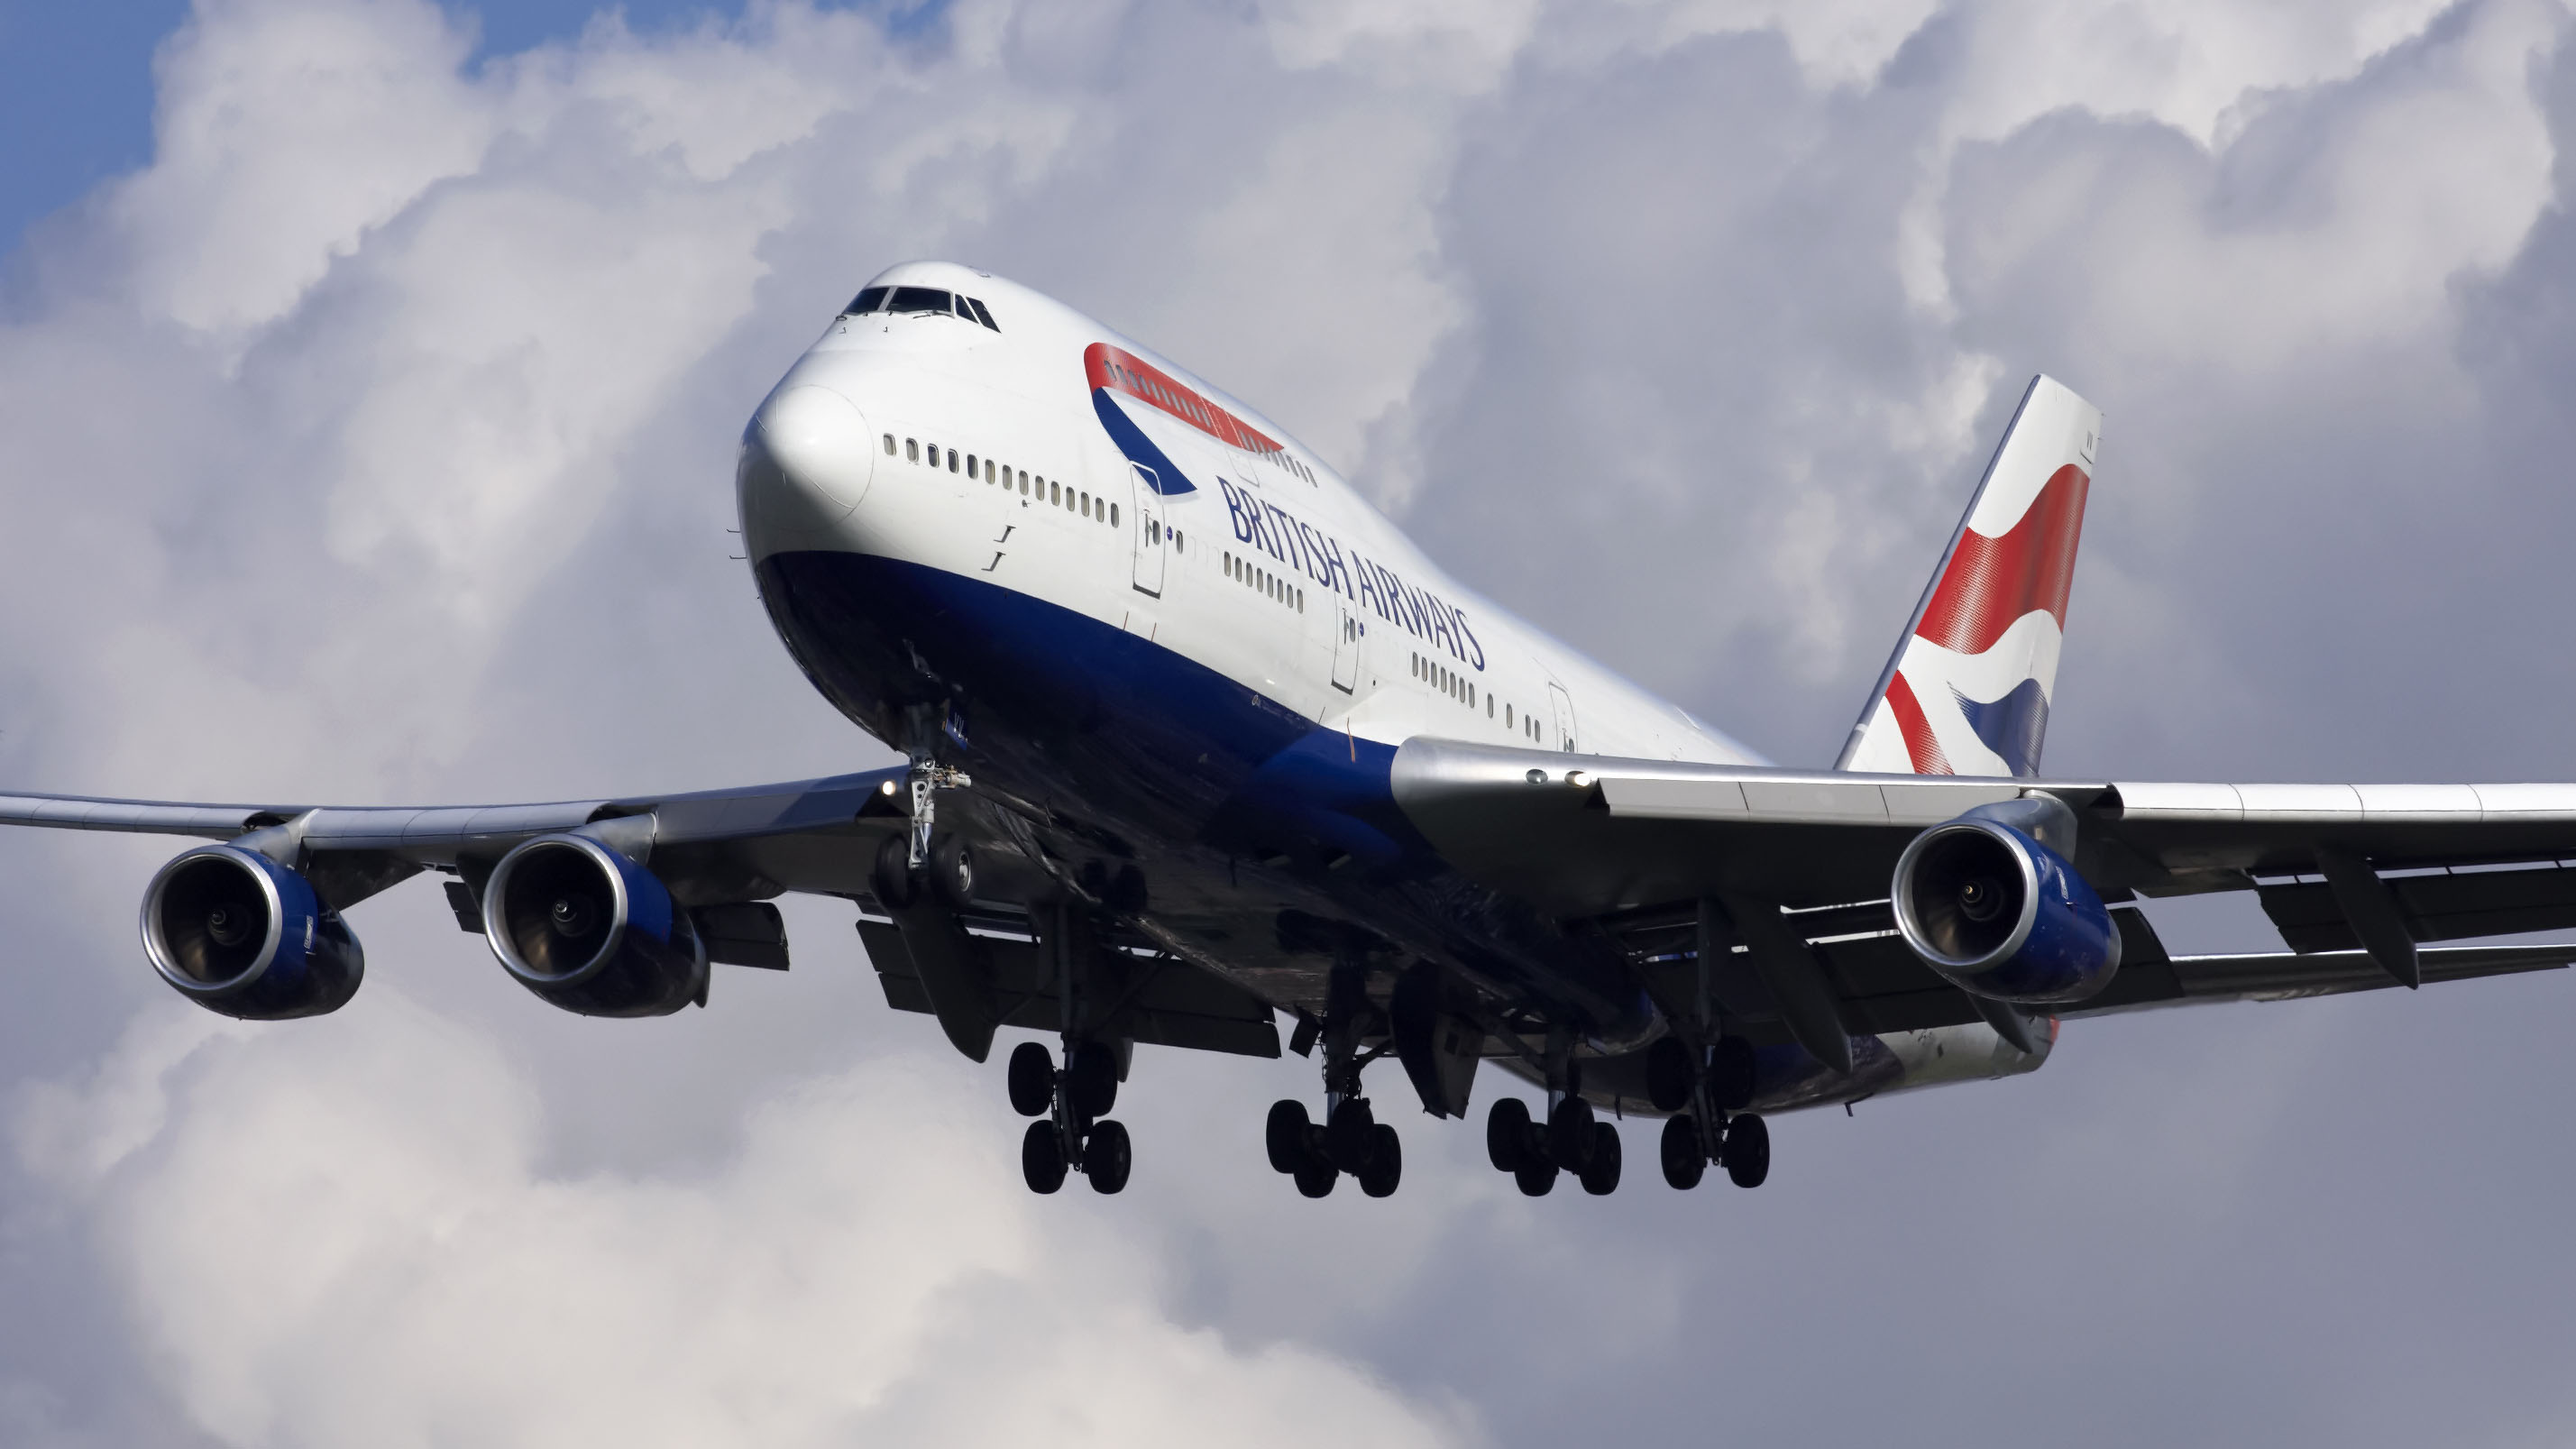 British Airways may have set record for fastest subsonic flight from New York to London